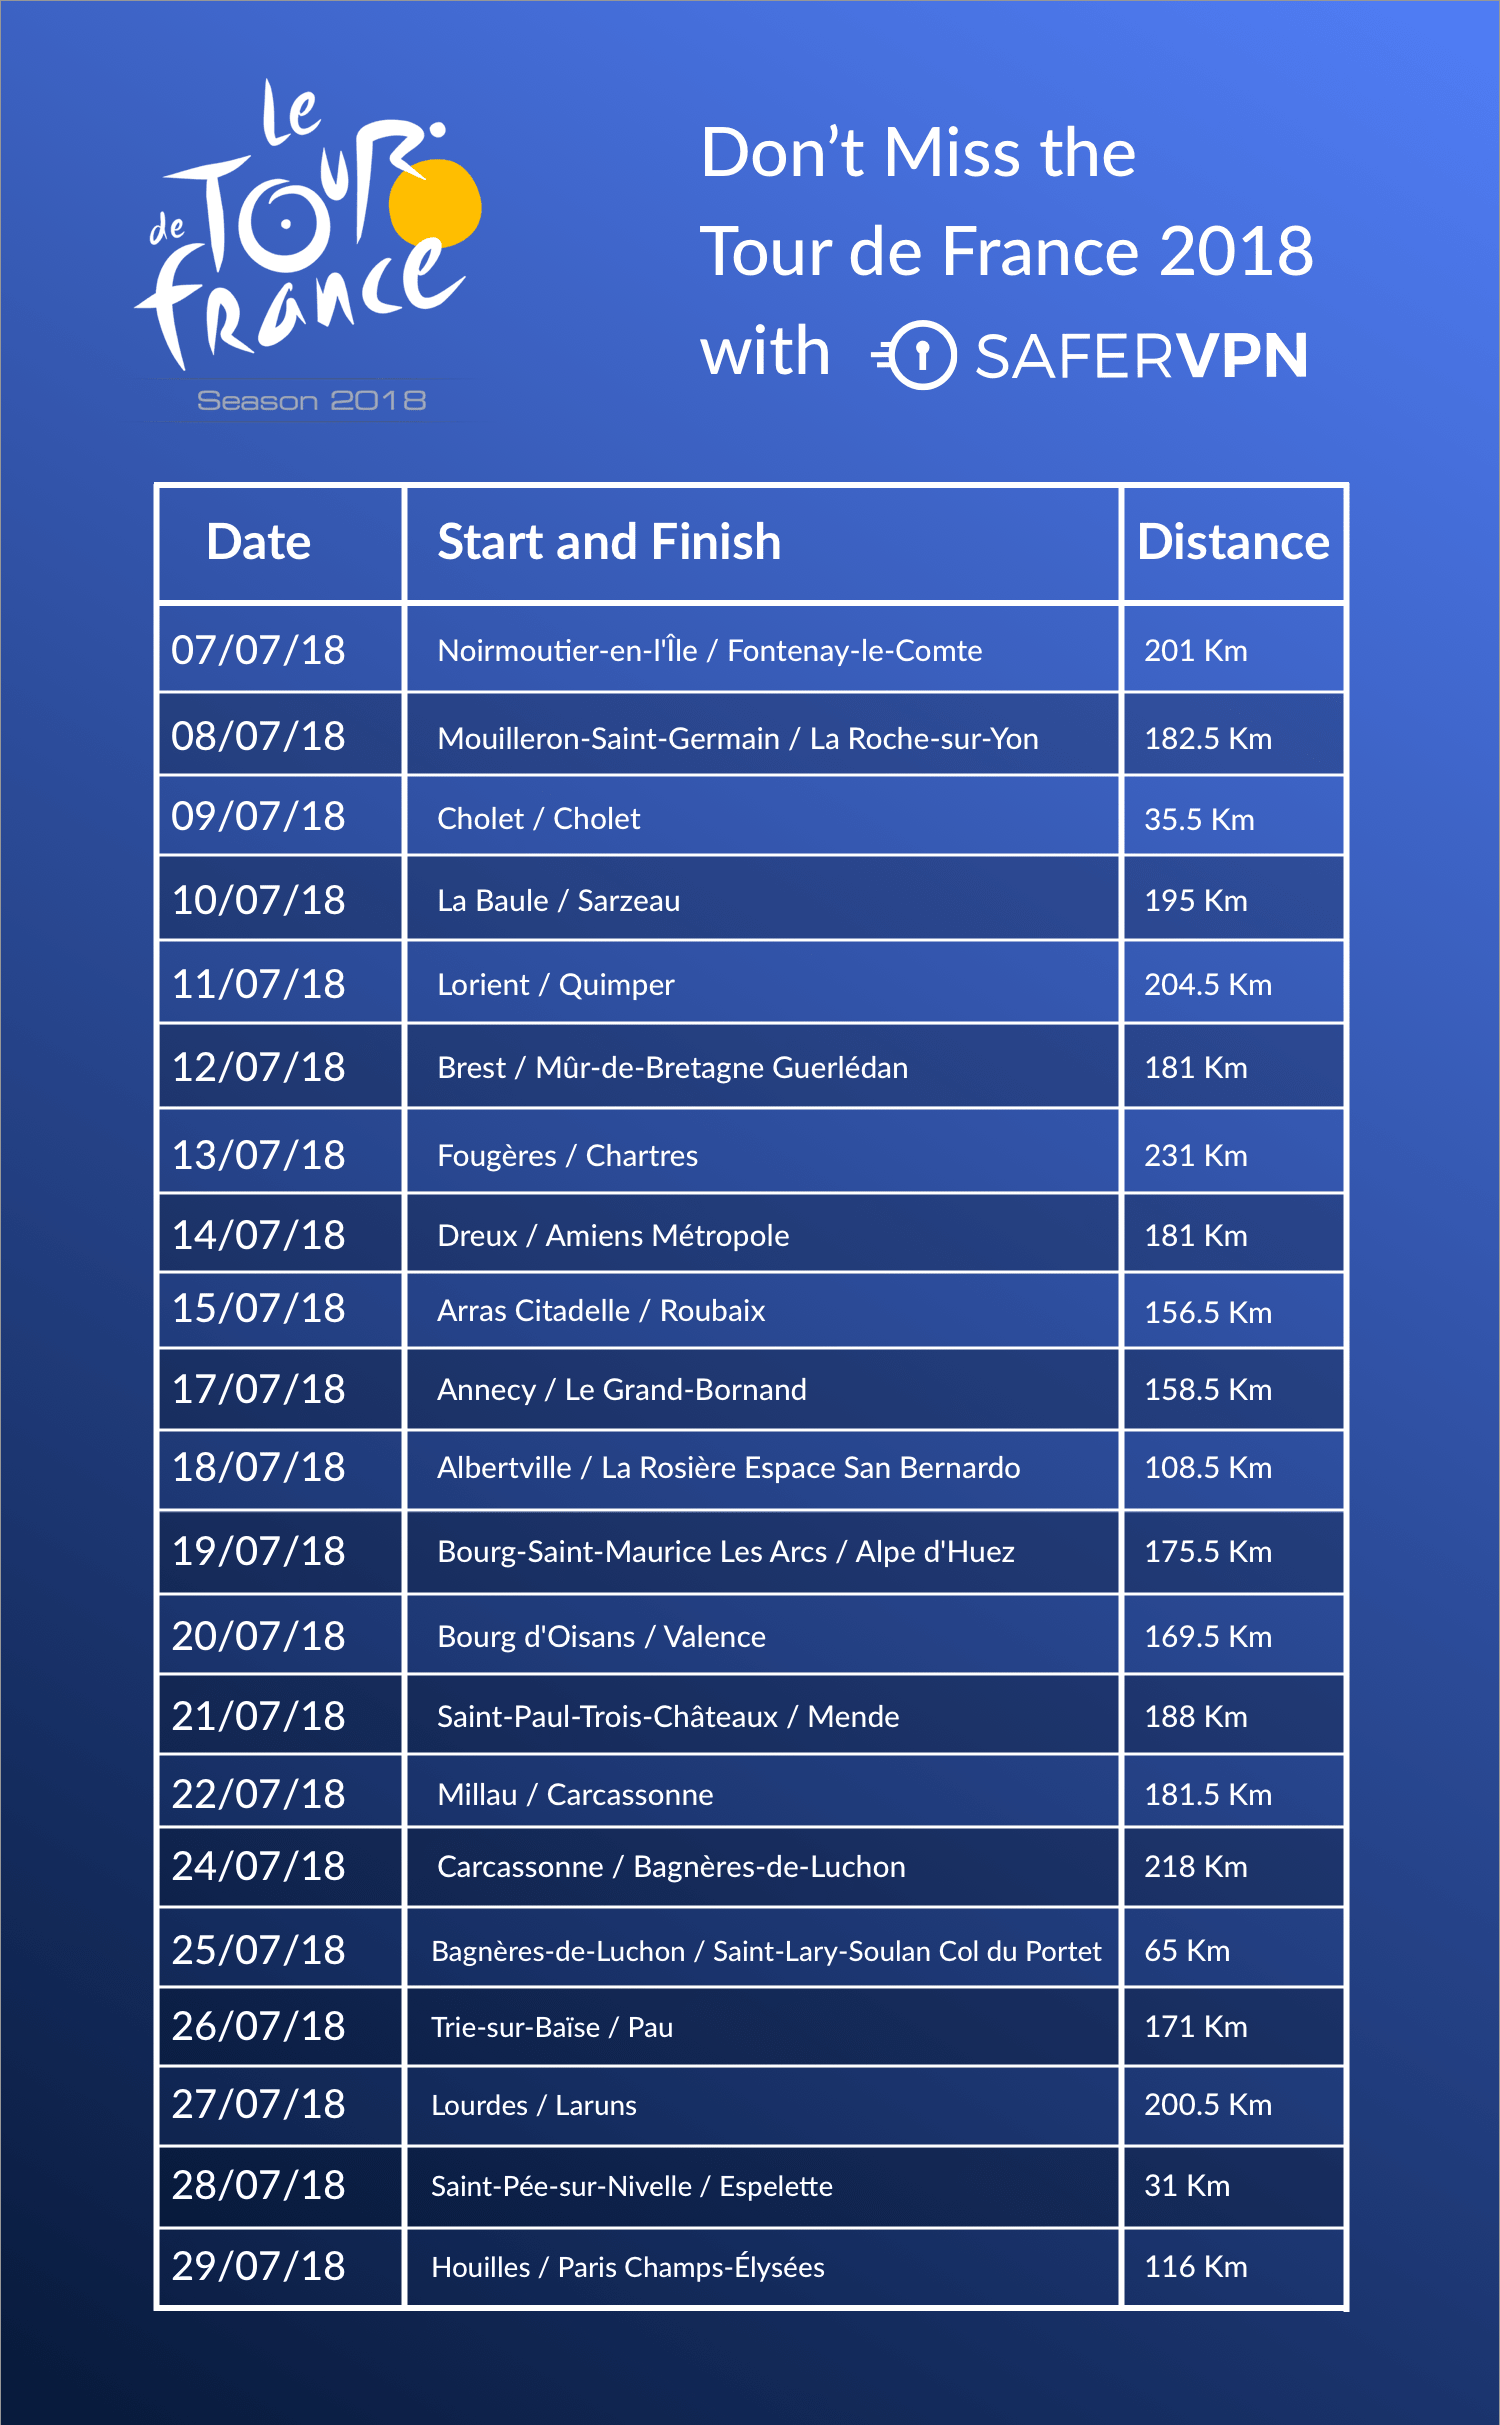 Tour de France 2018 schedule on blue background